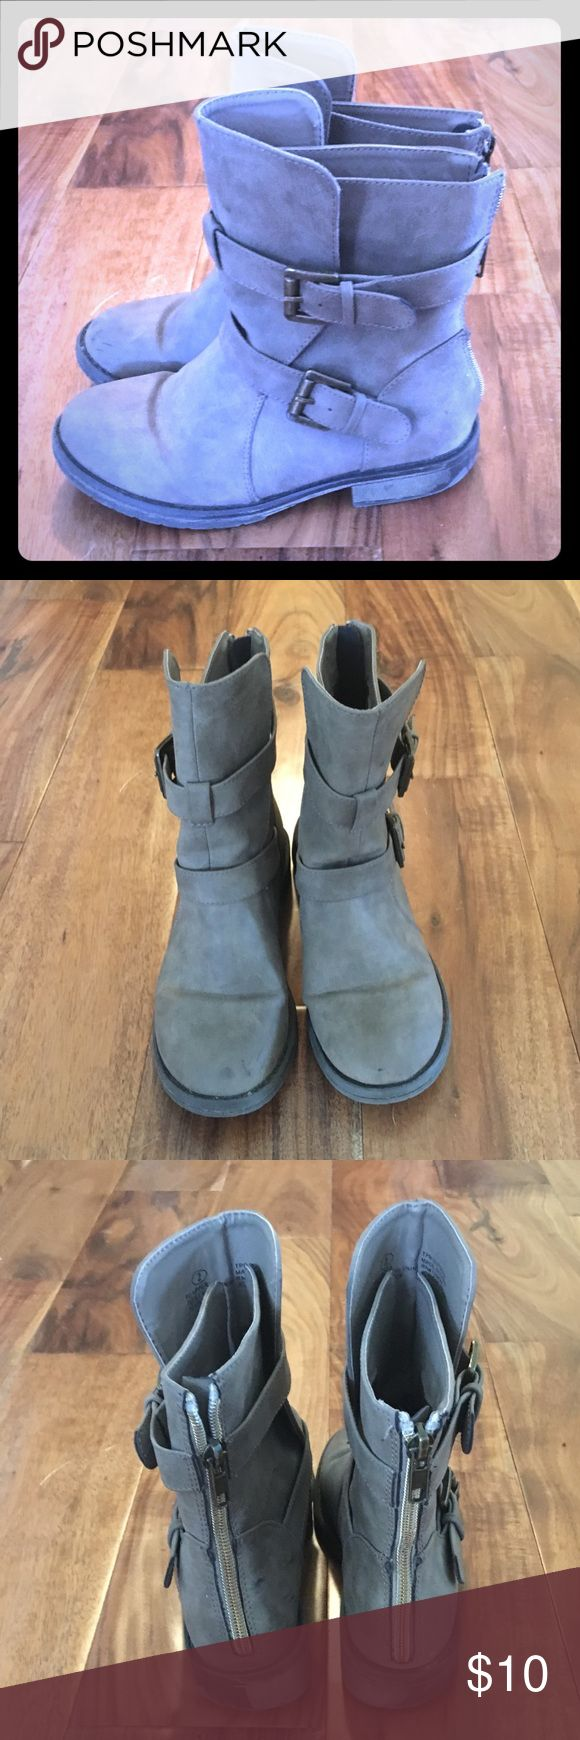 Steve Madden Boots GIRLS Size 2 Steve Madden Boots Used Bottom of sole shoes wear Steve Madden Shoes Boots